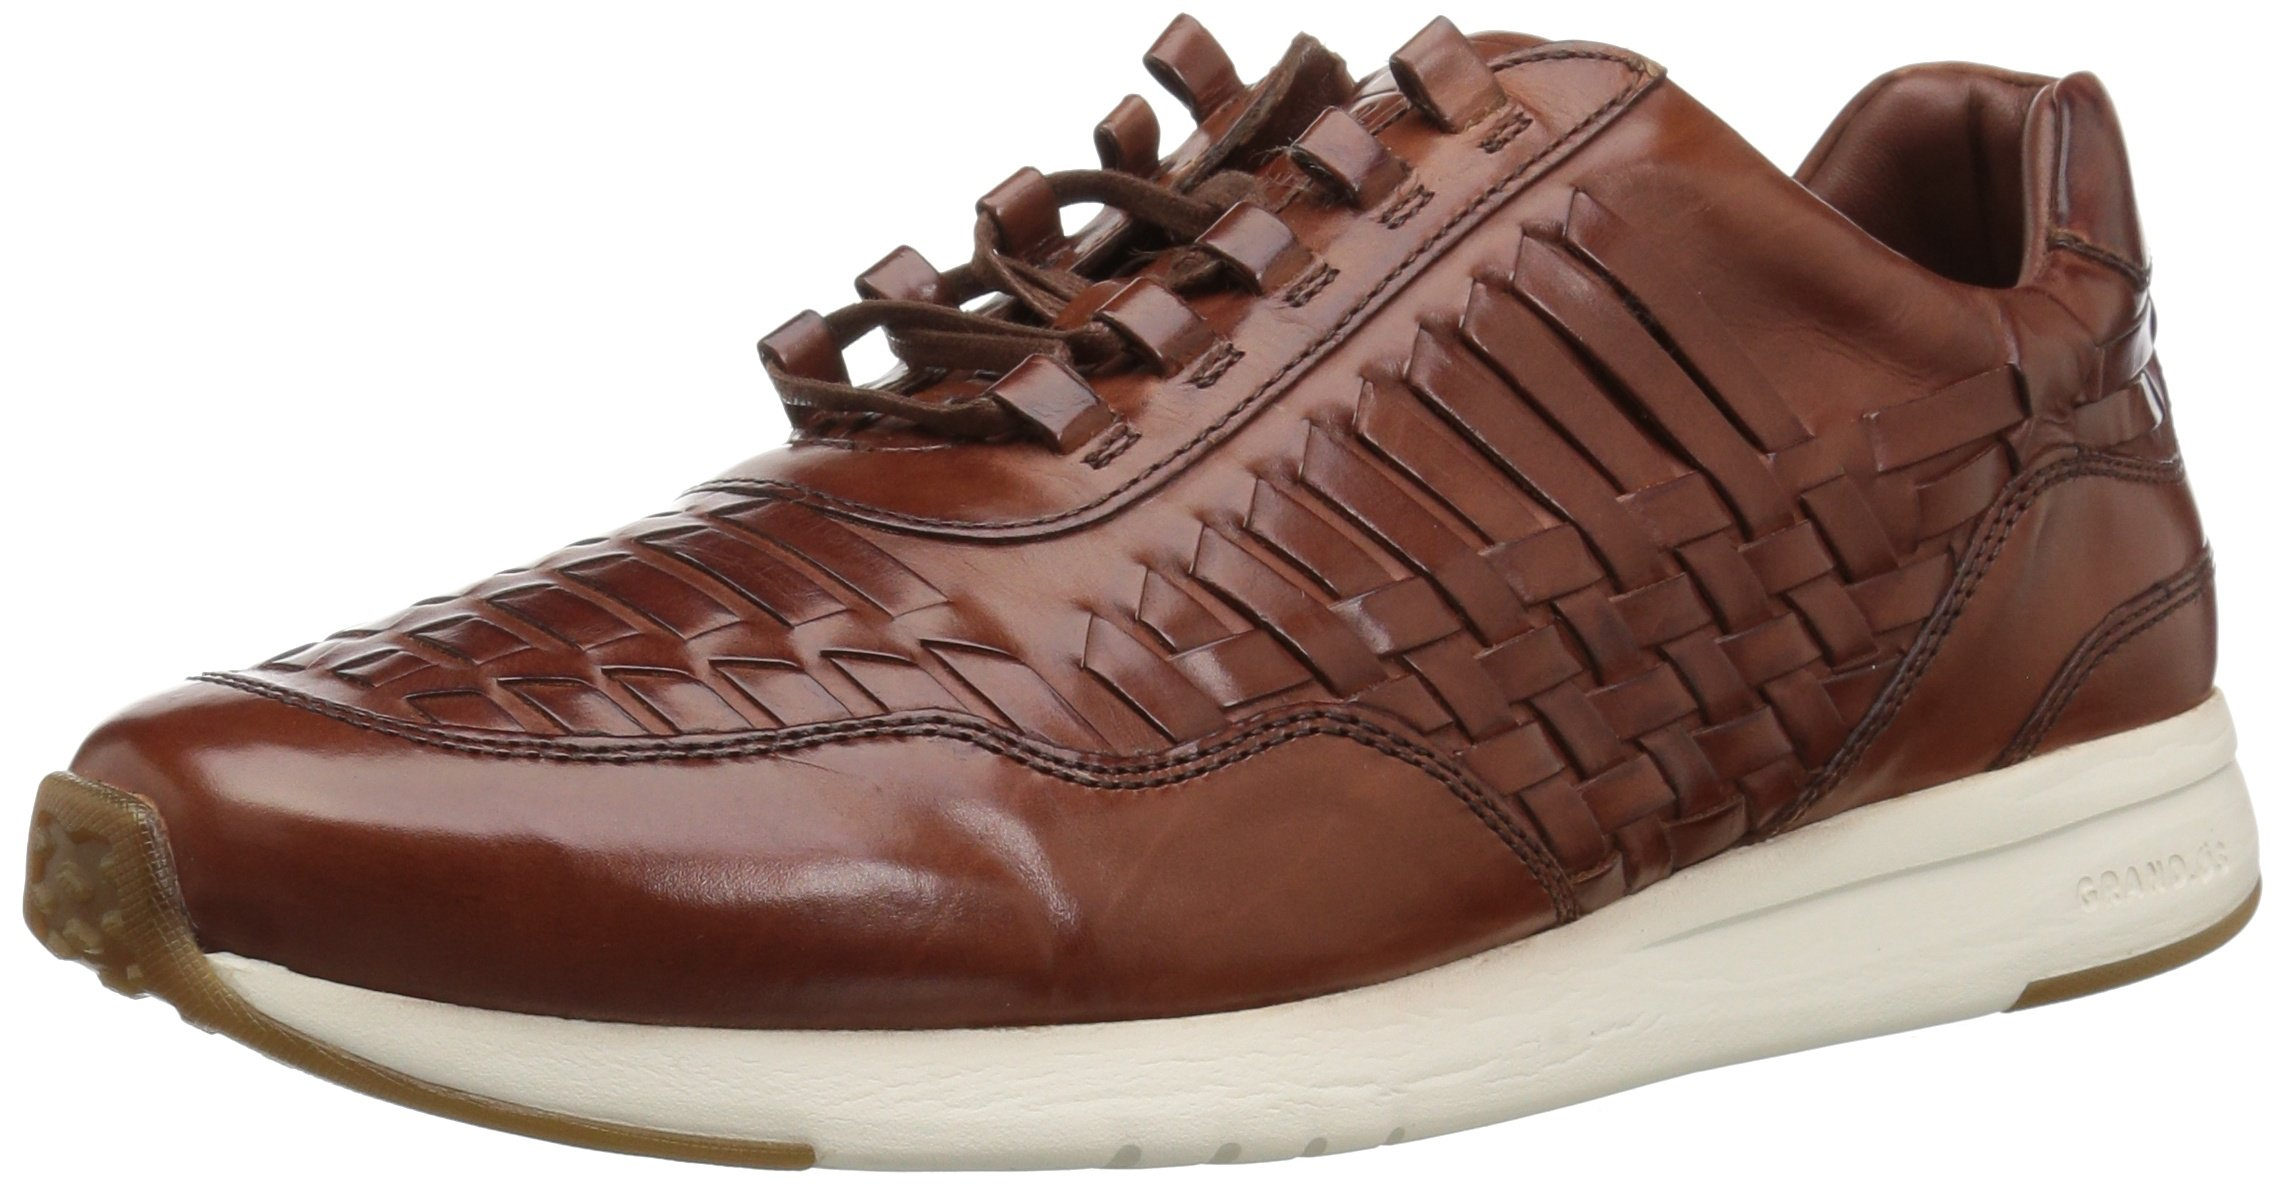 Cole Haan Men's Grandpro Runner Huarache Sneaker, Woodbury Woven Burnish, 12 Medium US